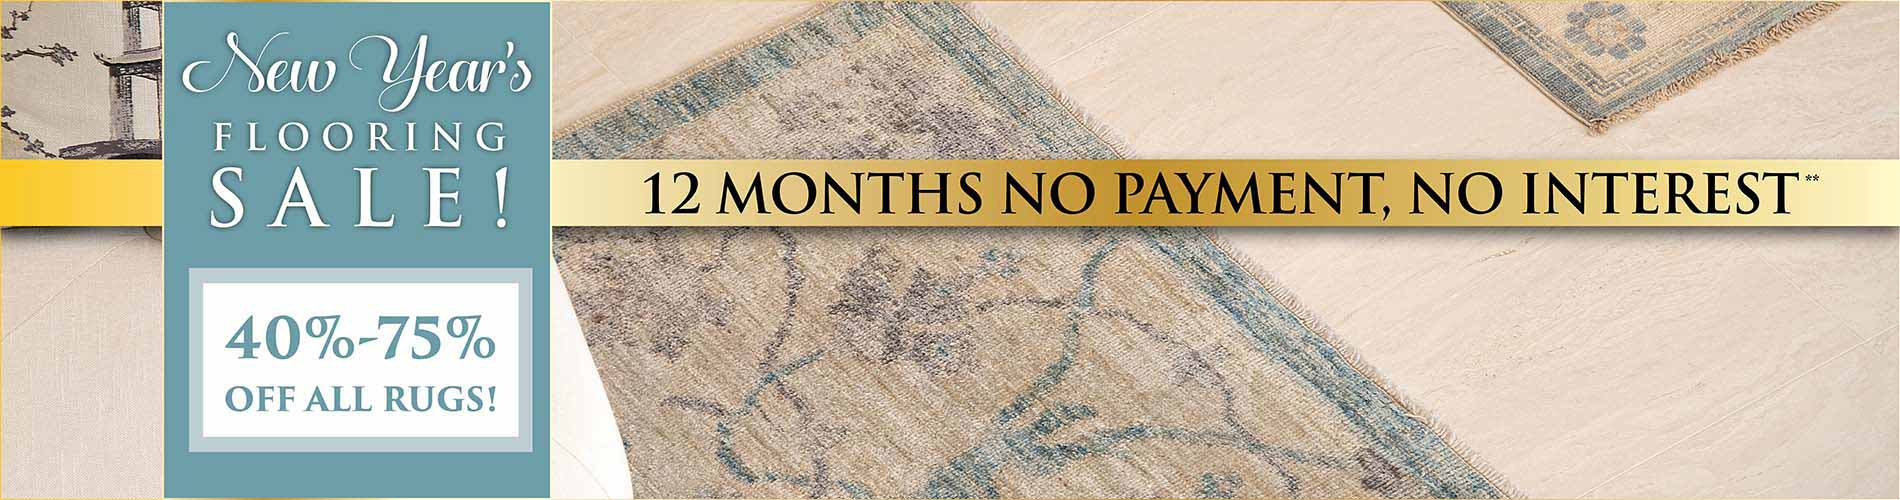 Save 40-75% off all area rugs during our New year's flooring sale at Abbey Carpet Naples